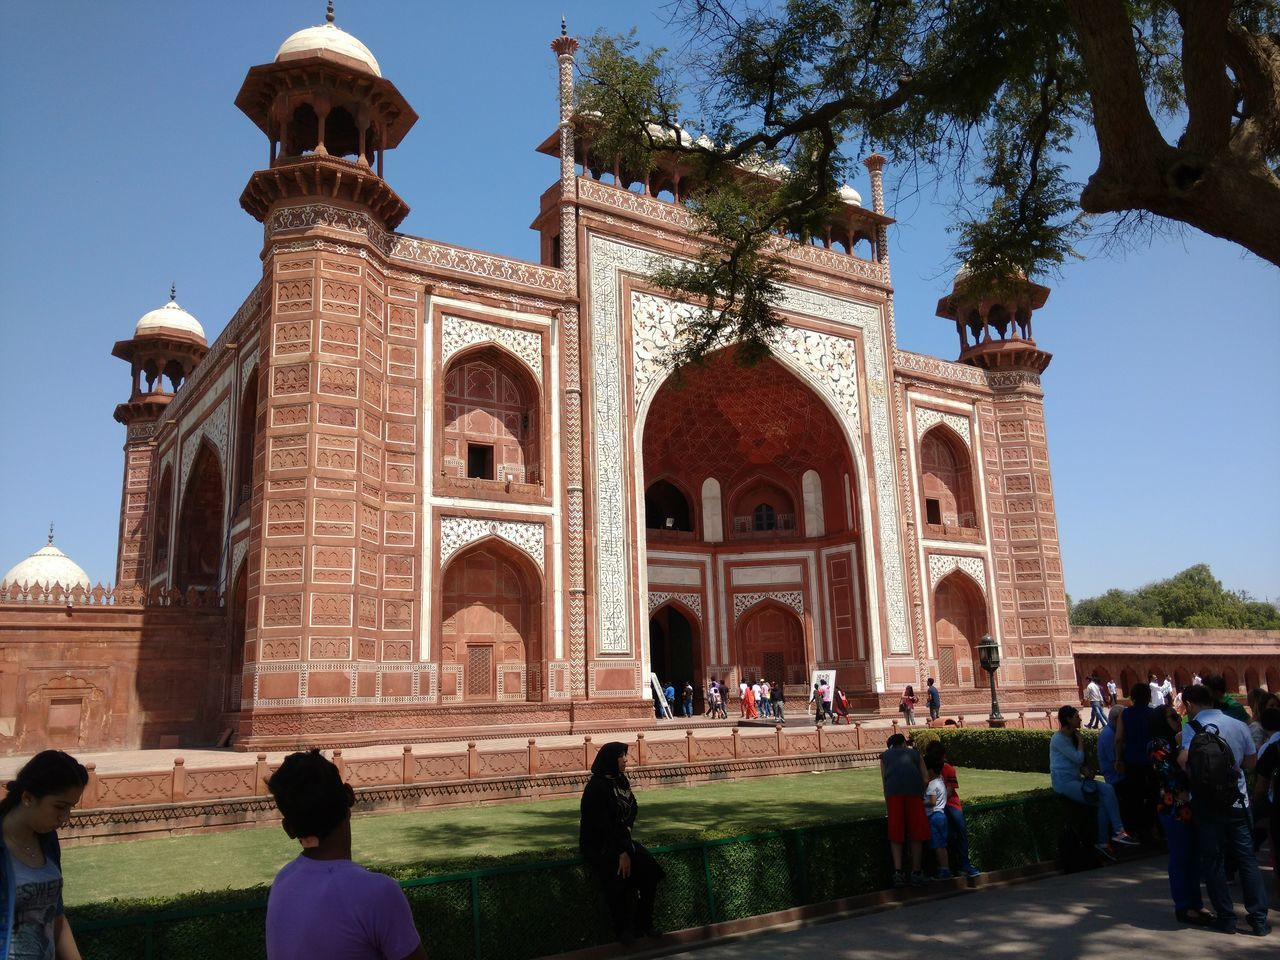 Travel Destinations Travel Large Group Of People Tourism Architecture Pilgrimage Vacations People Outdoors Adults Only Day Adult Taj Mahal Agra Buliding Built Structure Architecture Rural Landscape Landscape EyeEmNewHere